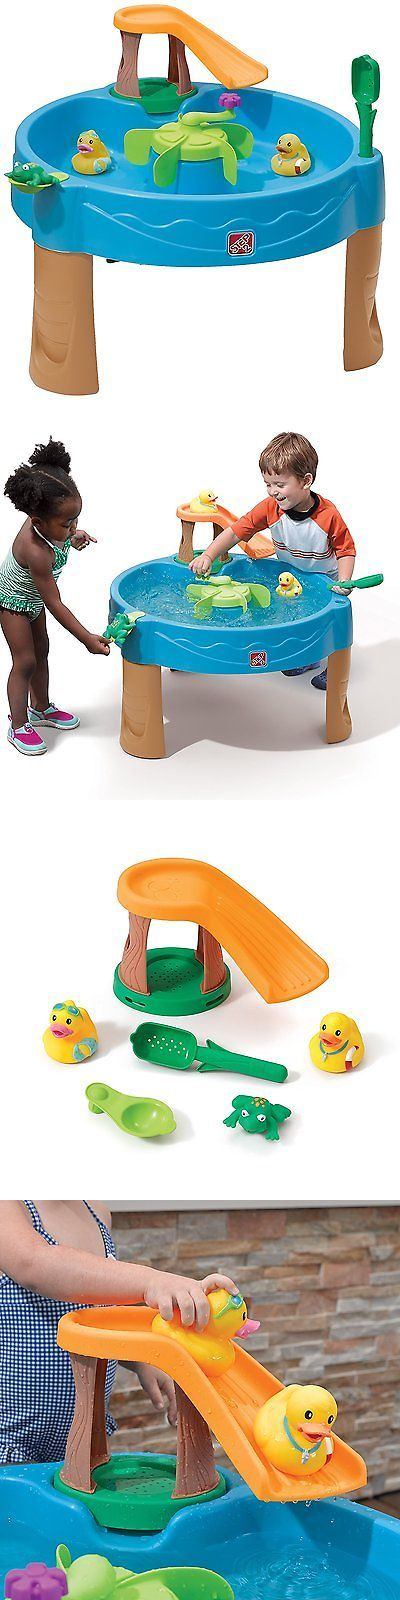 Water Toys 145993: Water Table Duck Pond Outdoor Activity Center Slide And Splash Seaway Fun Kids -> BUY IT NOW ONLY: $51.62 on eBay!